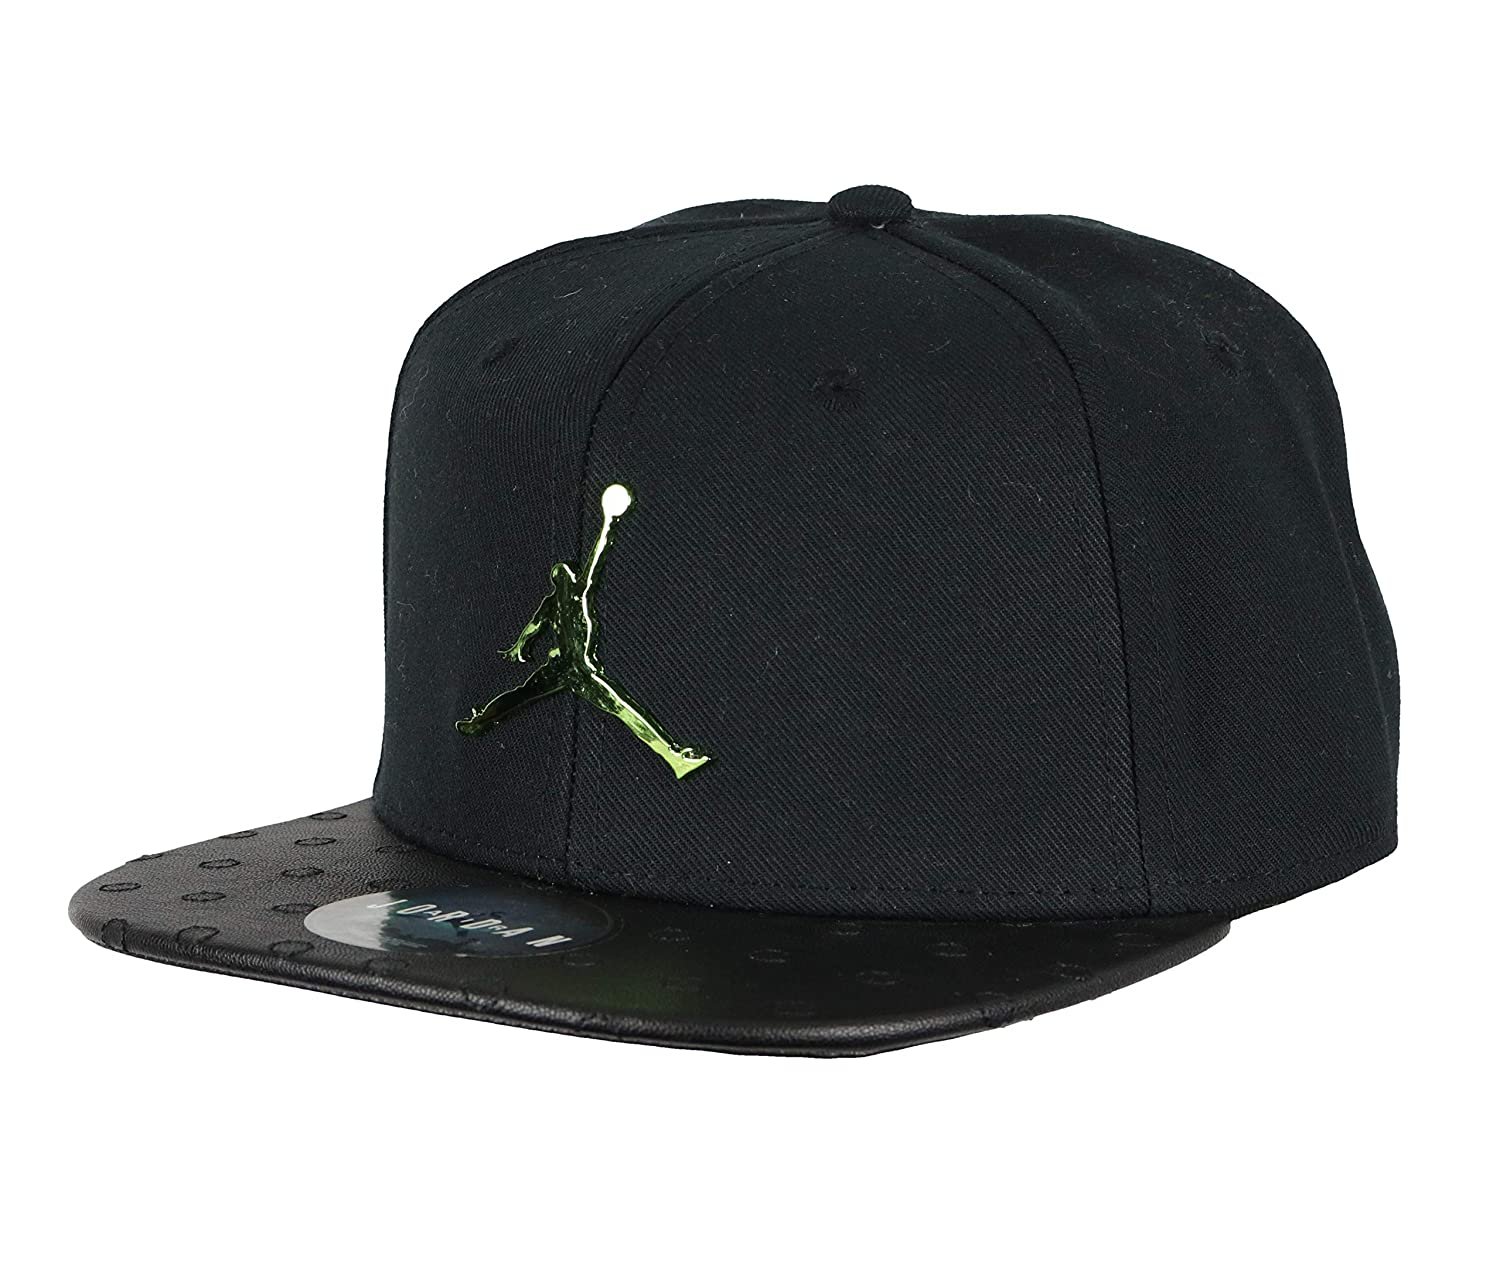 outlet store f3c5c 7378e Amazon.com: Jordan Kid's Retro 13 Altitude Snapback Cap One ...